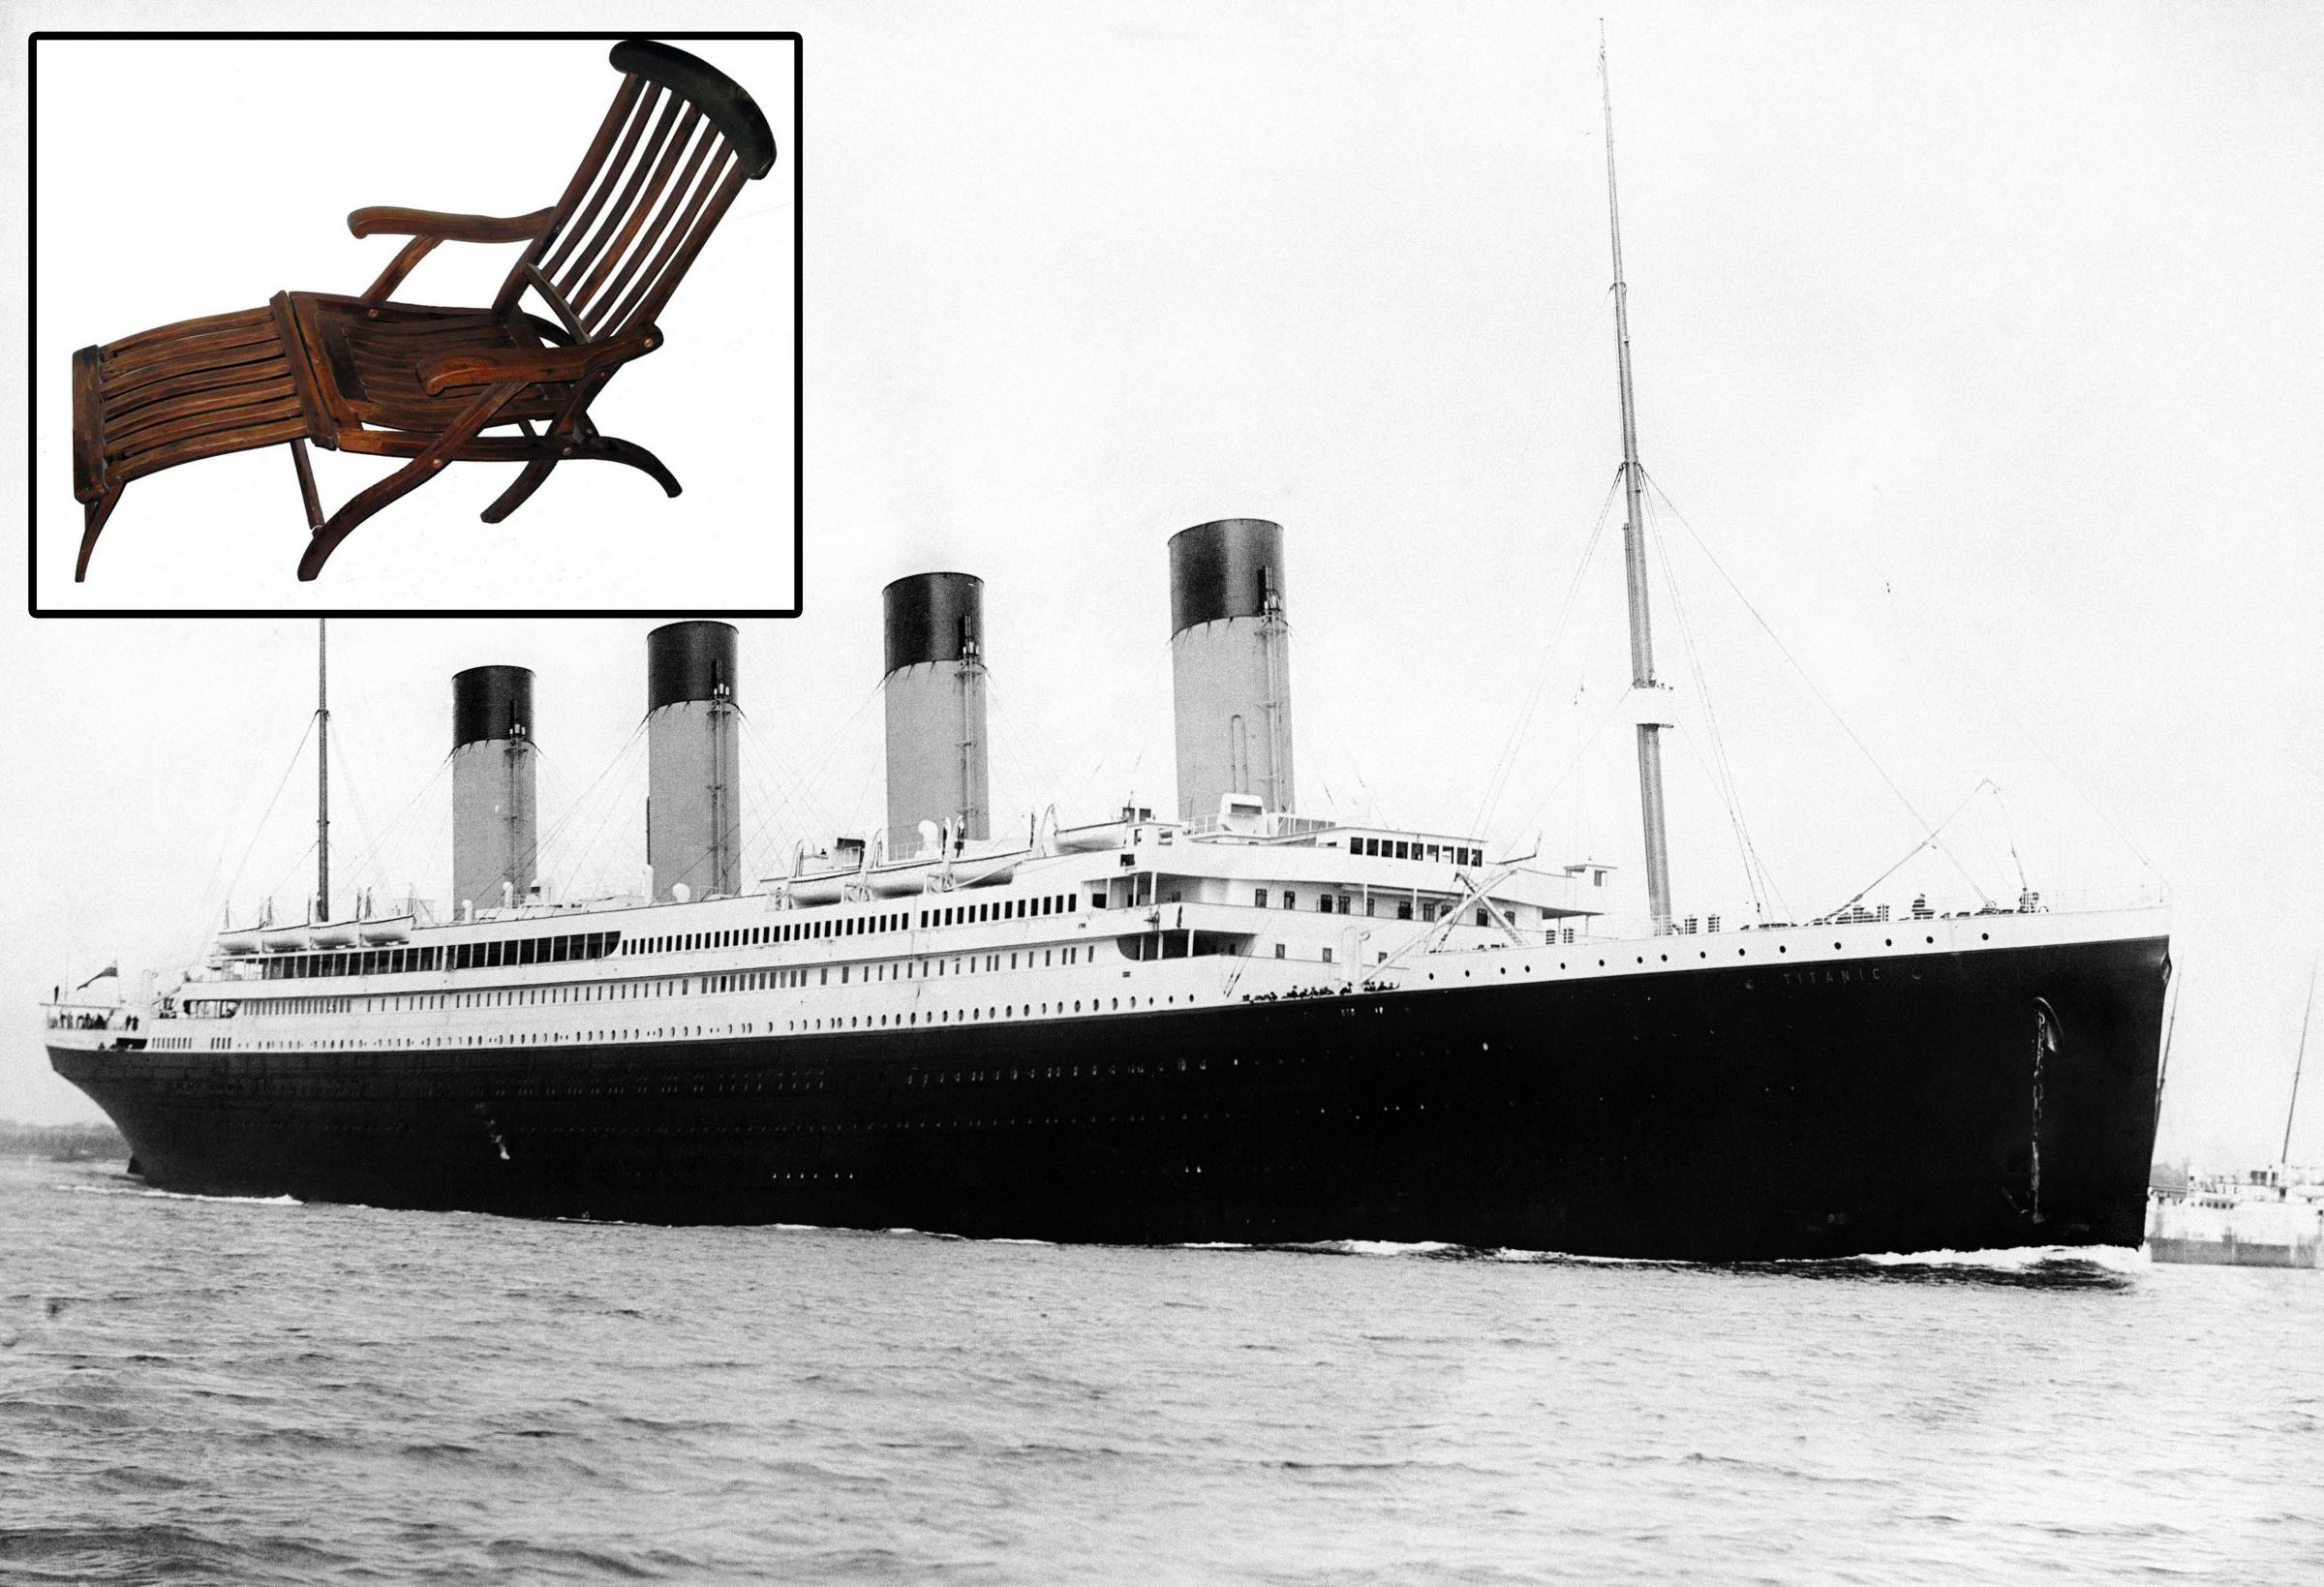 Inset: deck chair from the Titanic's sister ship Olympic.